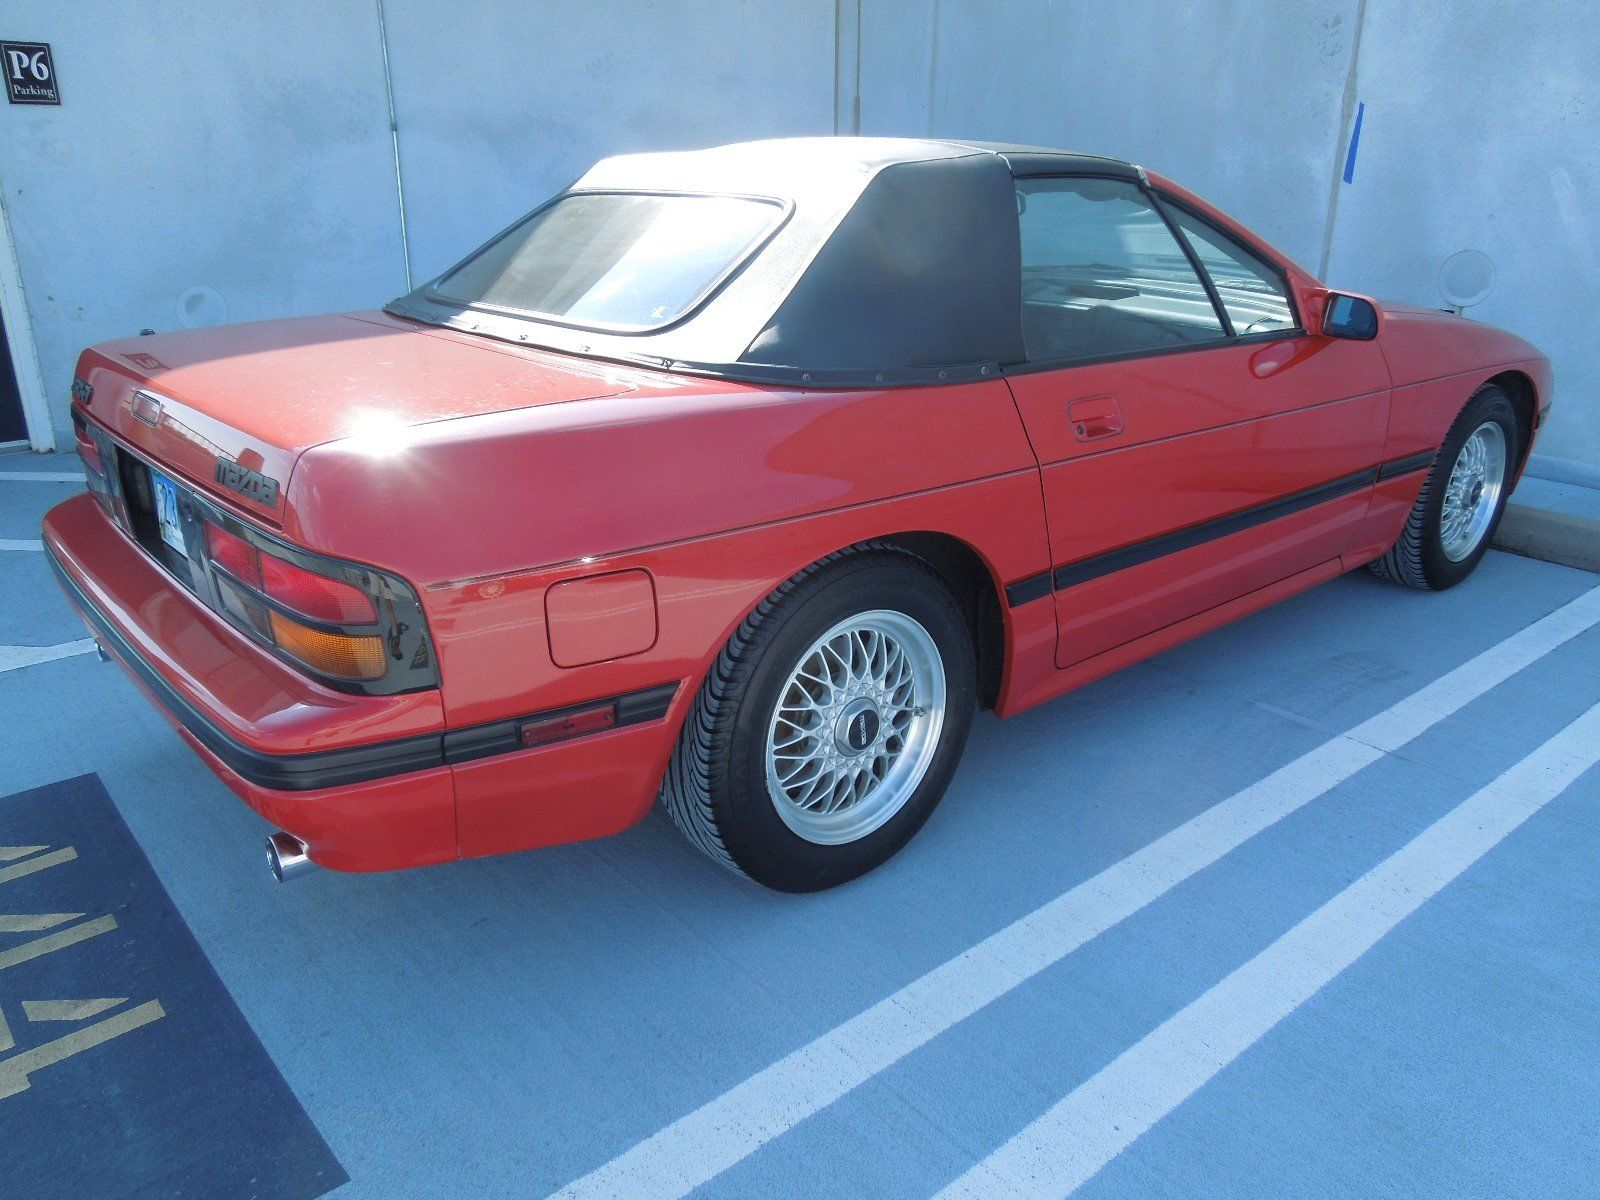 1988 Mazda RX-7 convertible rear 3/4